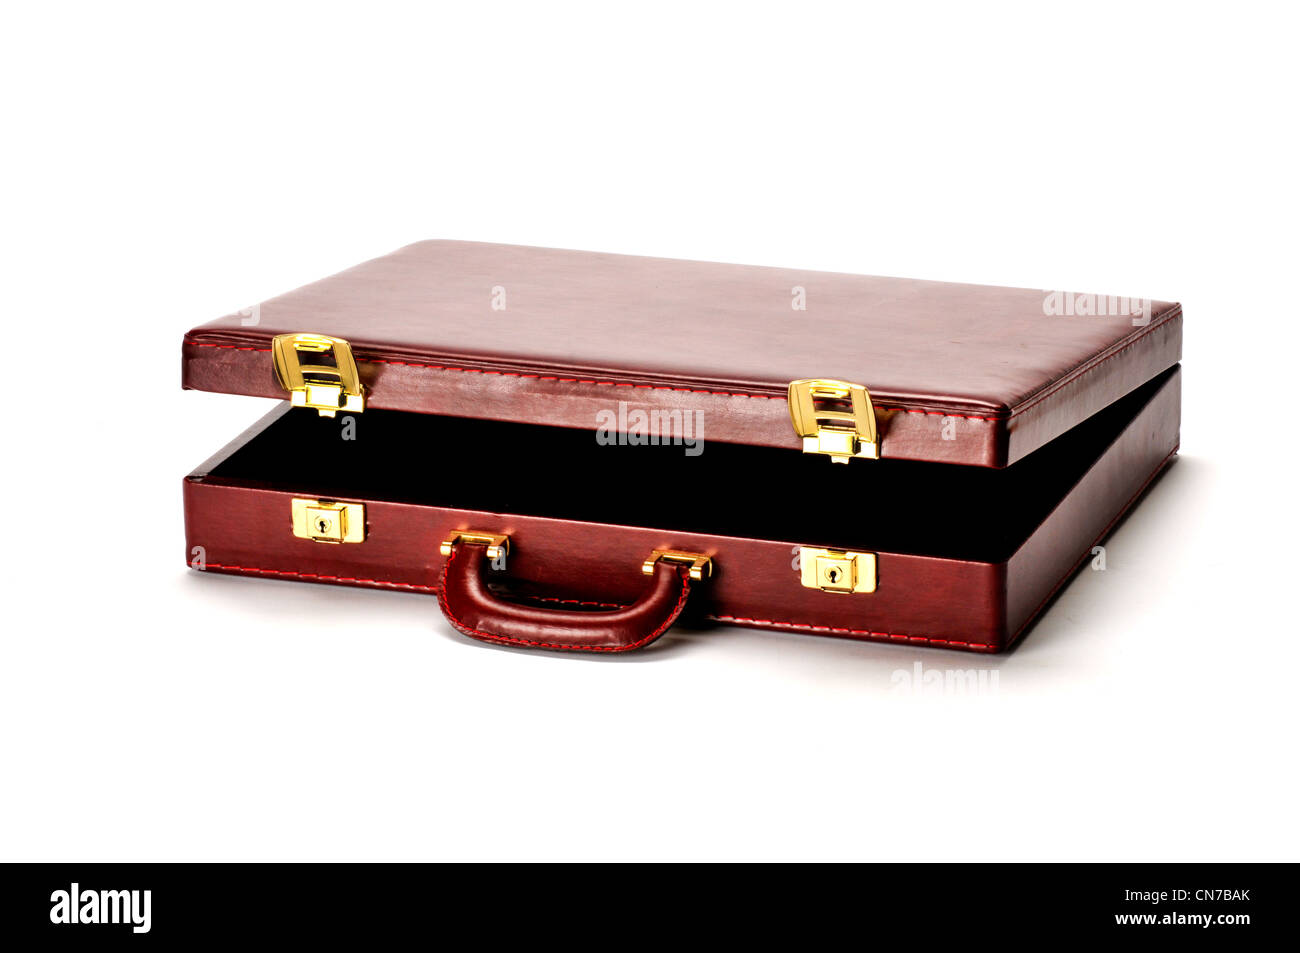 BURGANDY BROWN briefcase on white background - Stock Image